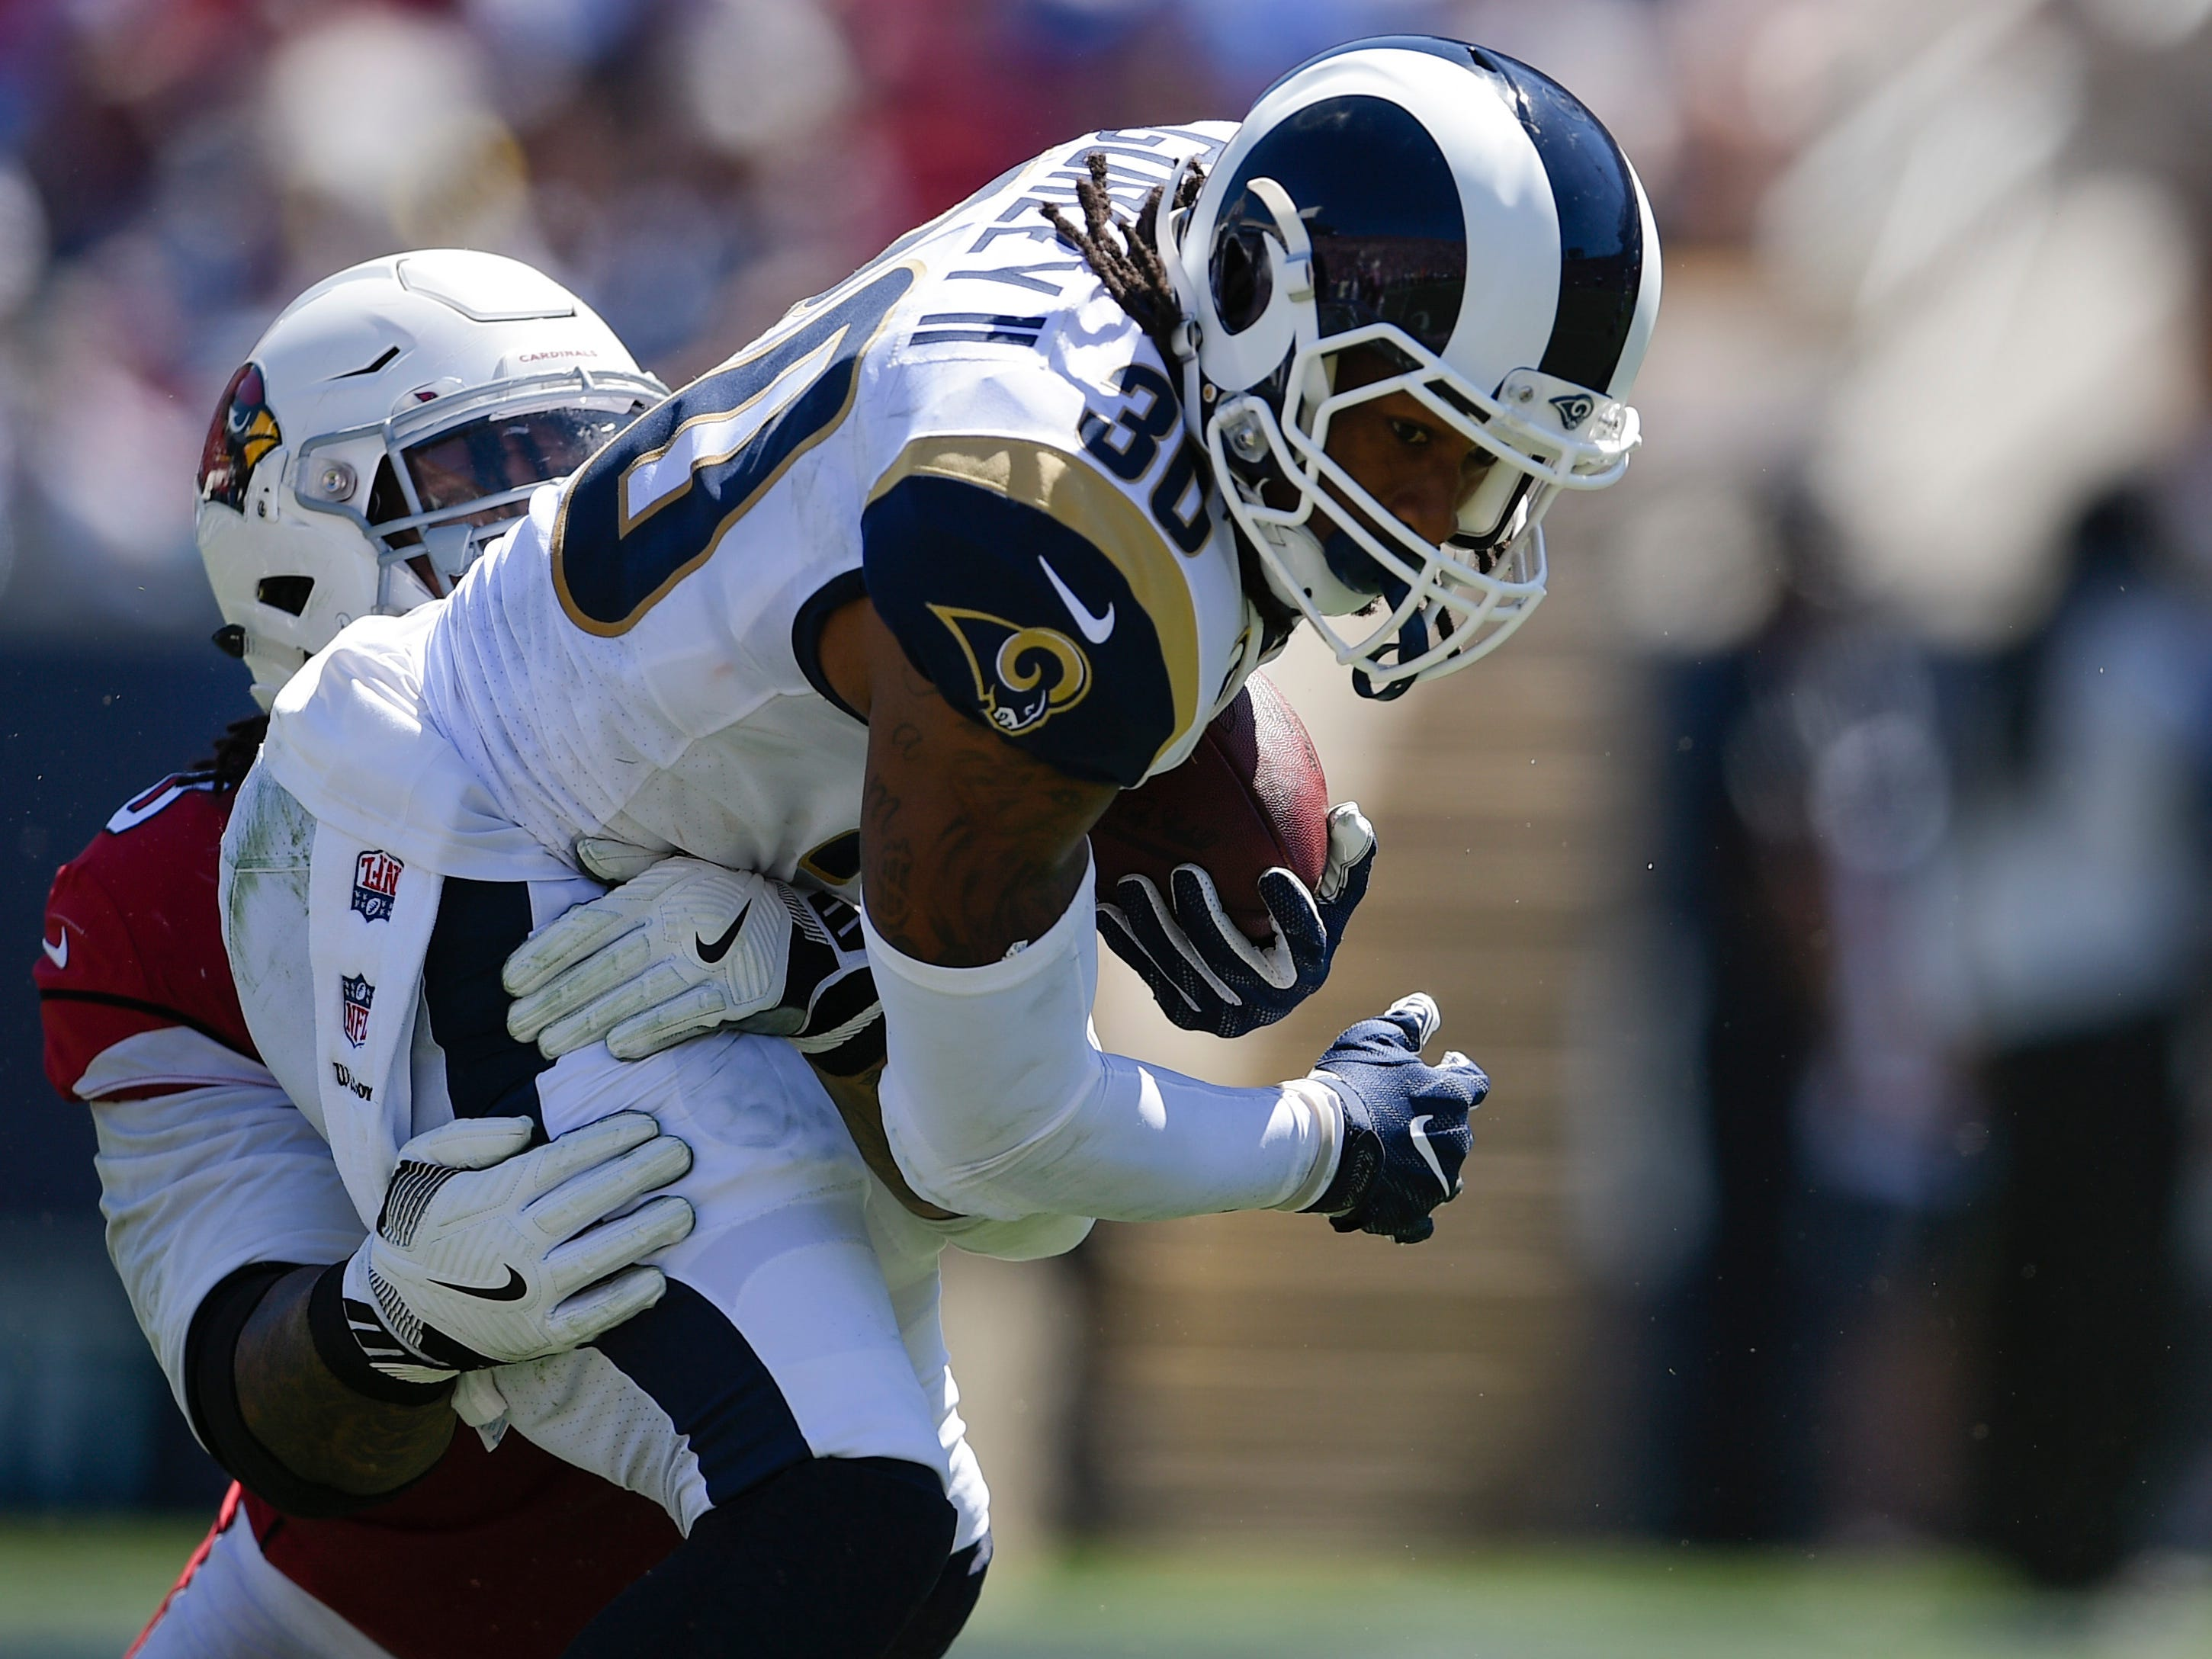 Sep 16, 2018; Los Angeles, CA, USA; Los Angeles Rams running back Todd Gurley II (30) runs the ball while being tackled by Arizona Cardinals defensive tackle Robert Nkemdiche (90) during the first half at Los Angeles Memorial Coliseum. Mandatory Credit: Kelvin Kuo-USA TODAY Sports